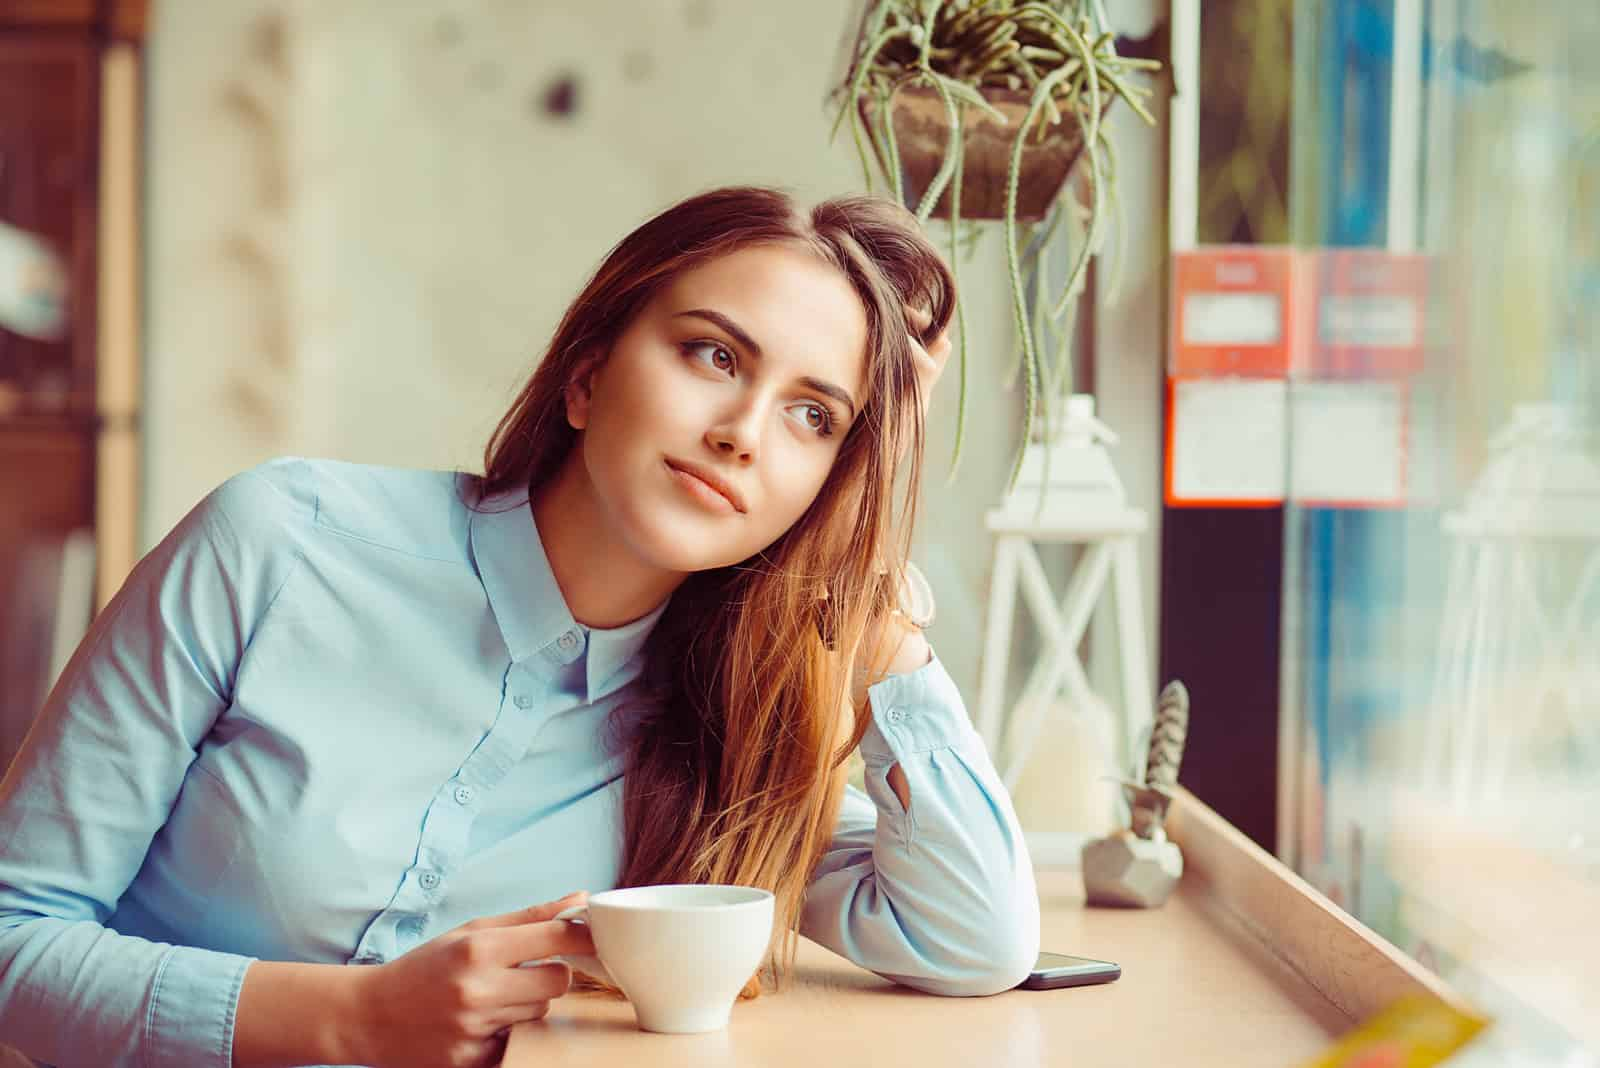 an imaginary woman sits at a table and drinks coffee